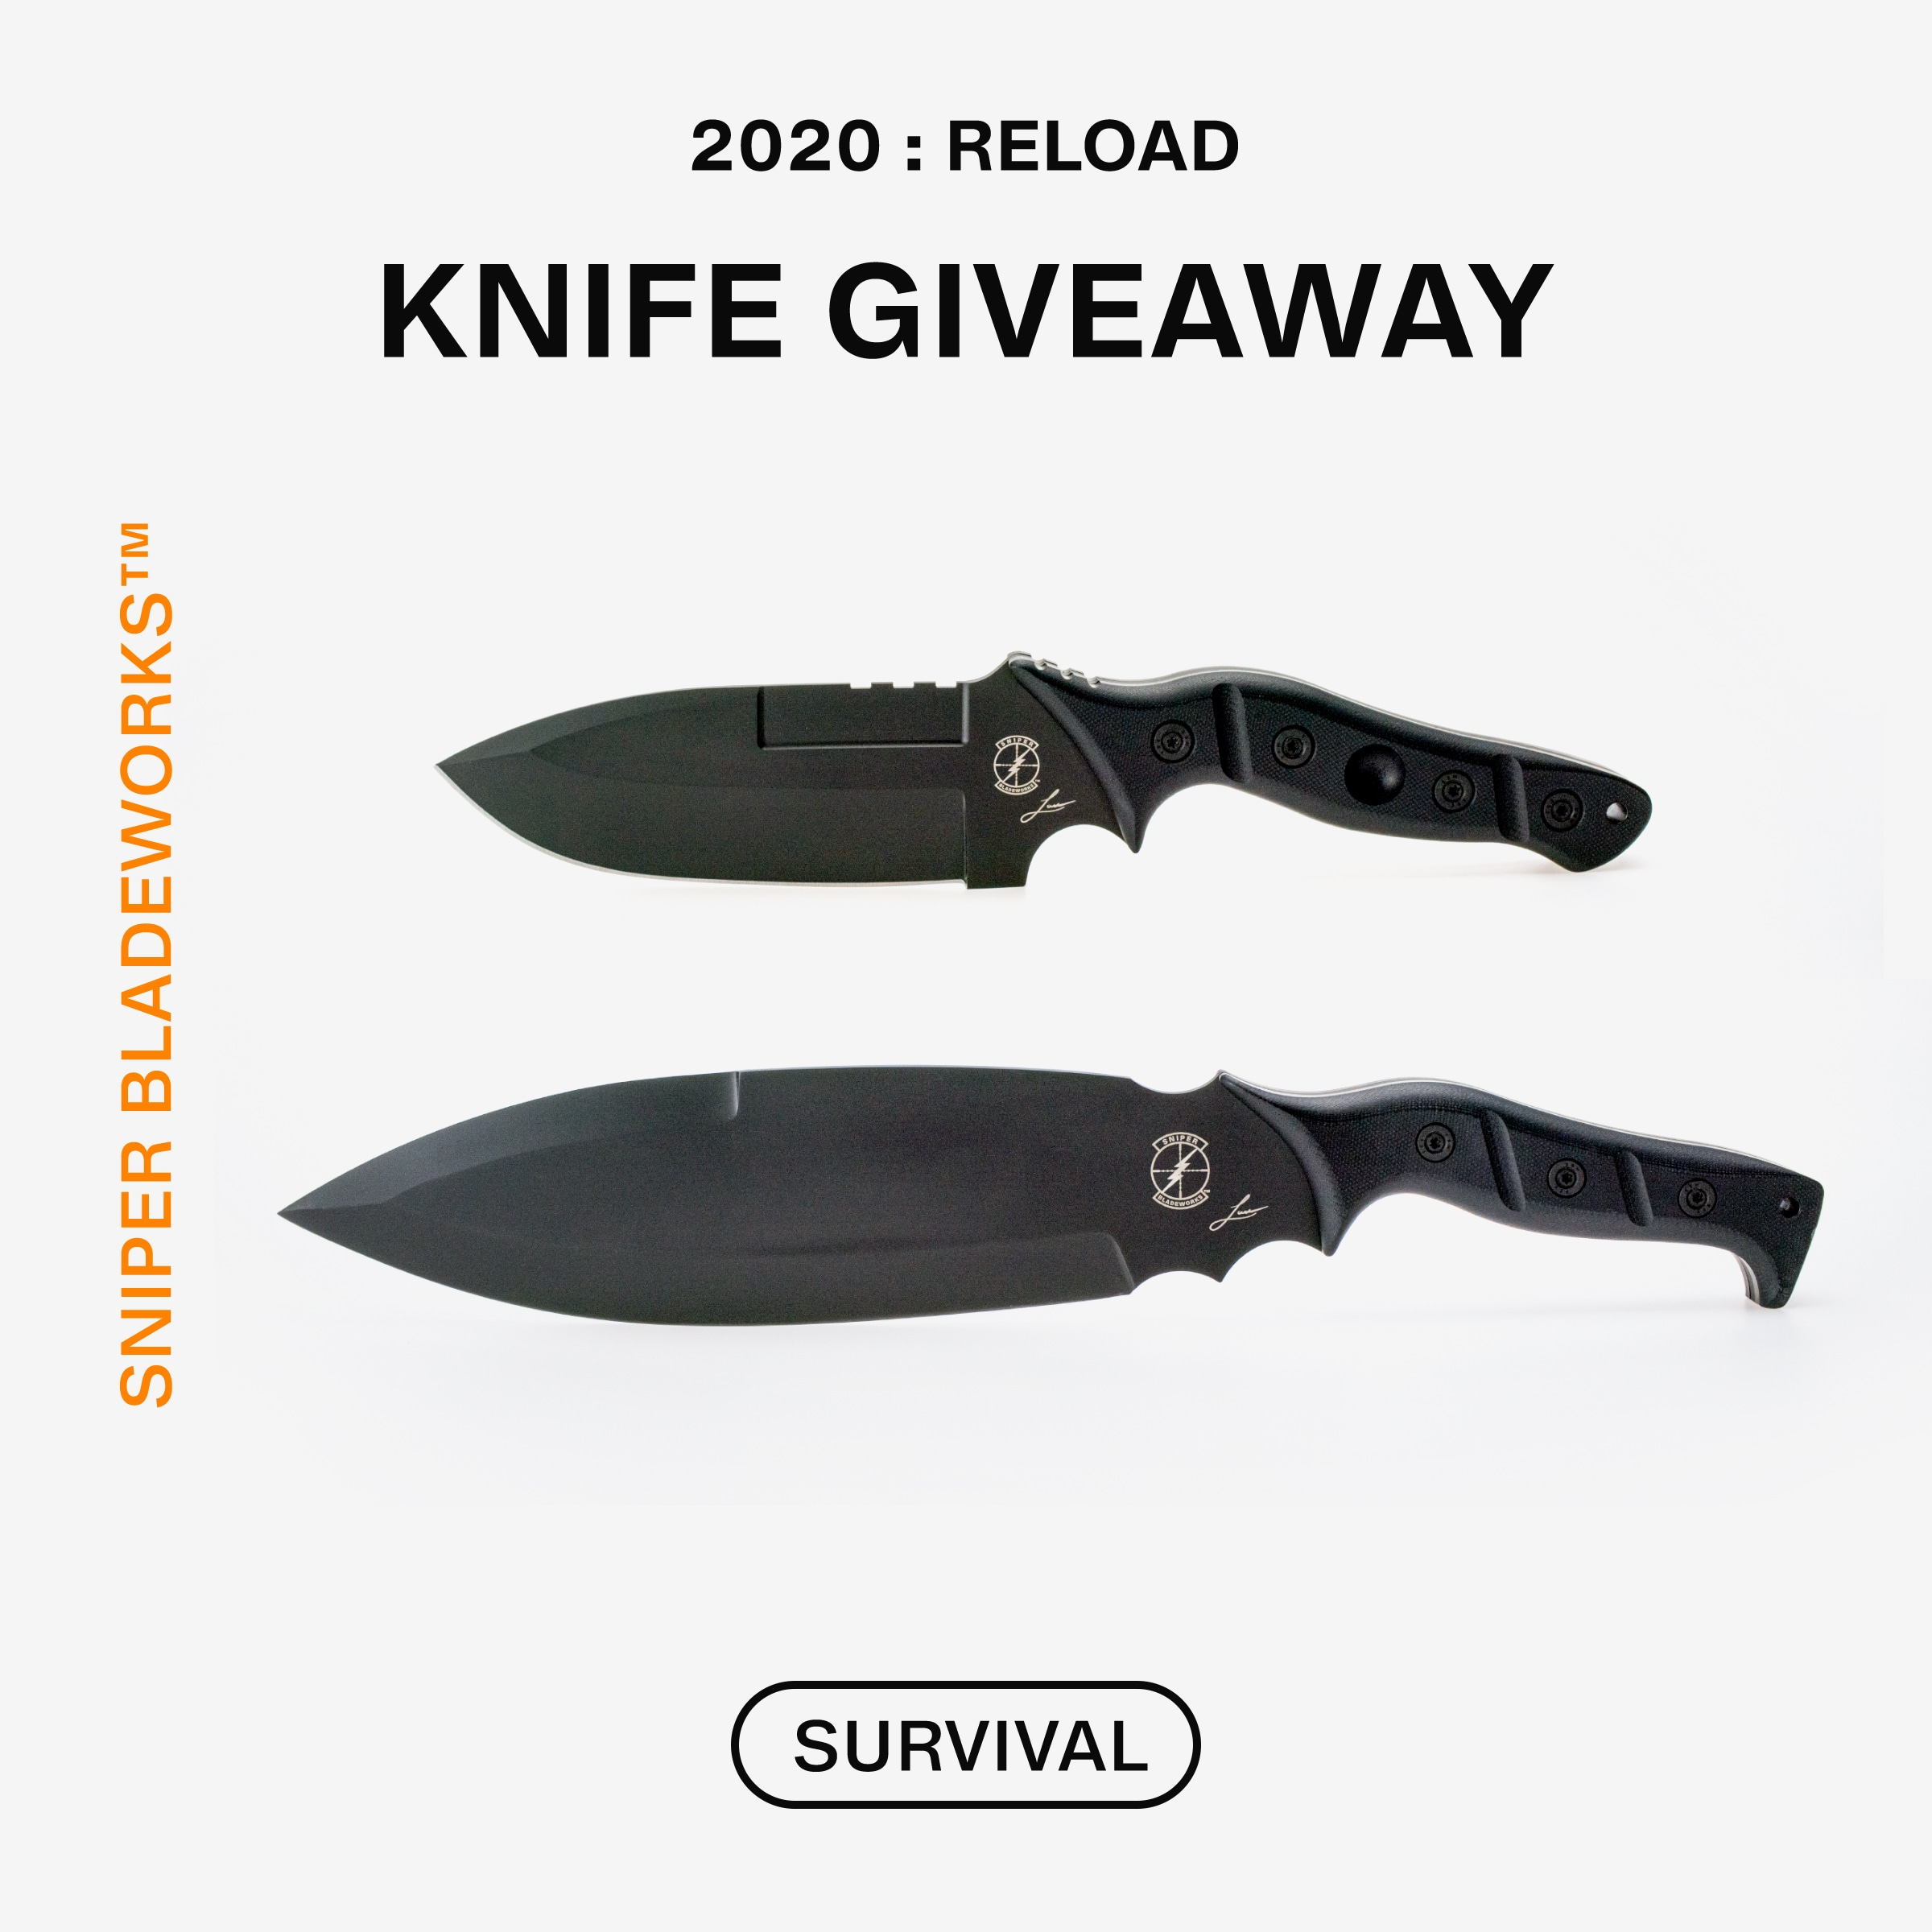 Enter to win an Outdoor MAMU Knife and an Outdoor Smachet Knife from Sniper Bladeworks. Giveaway Image